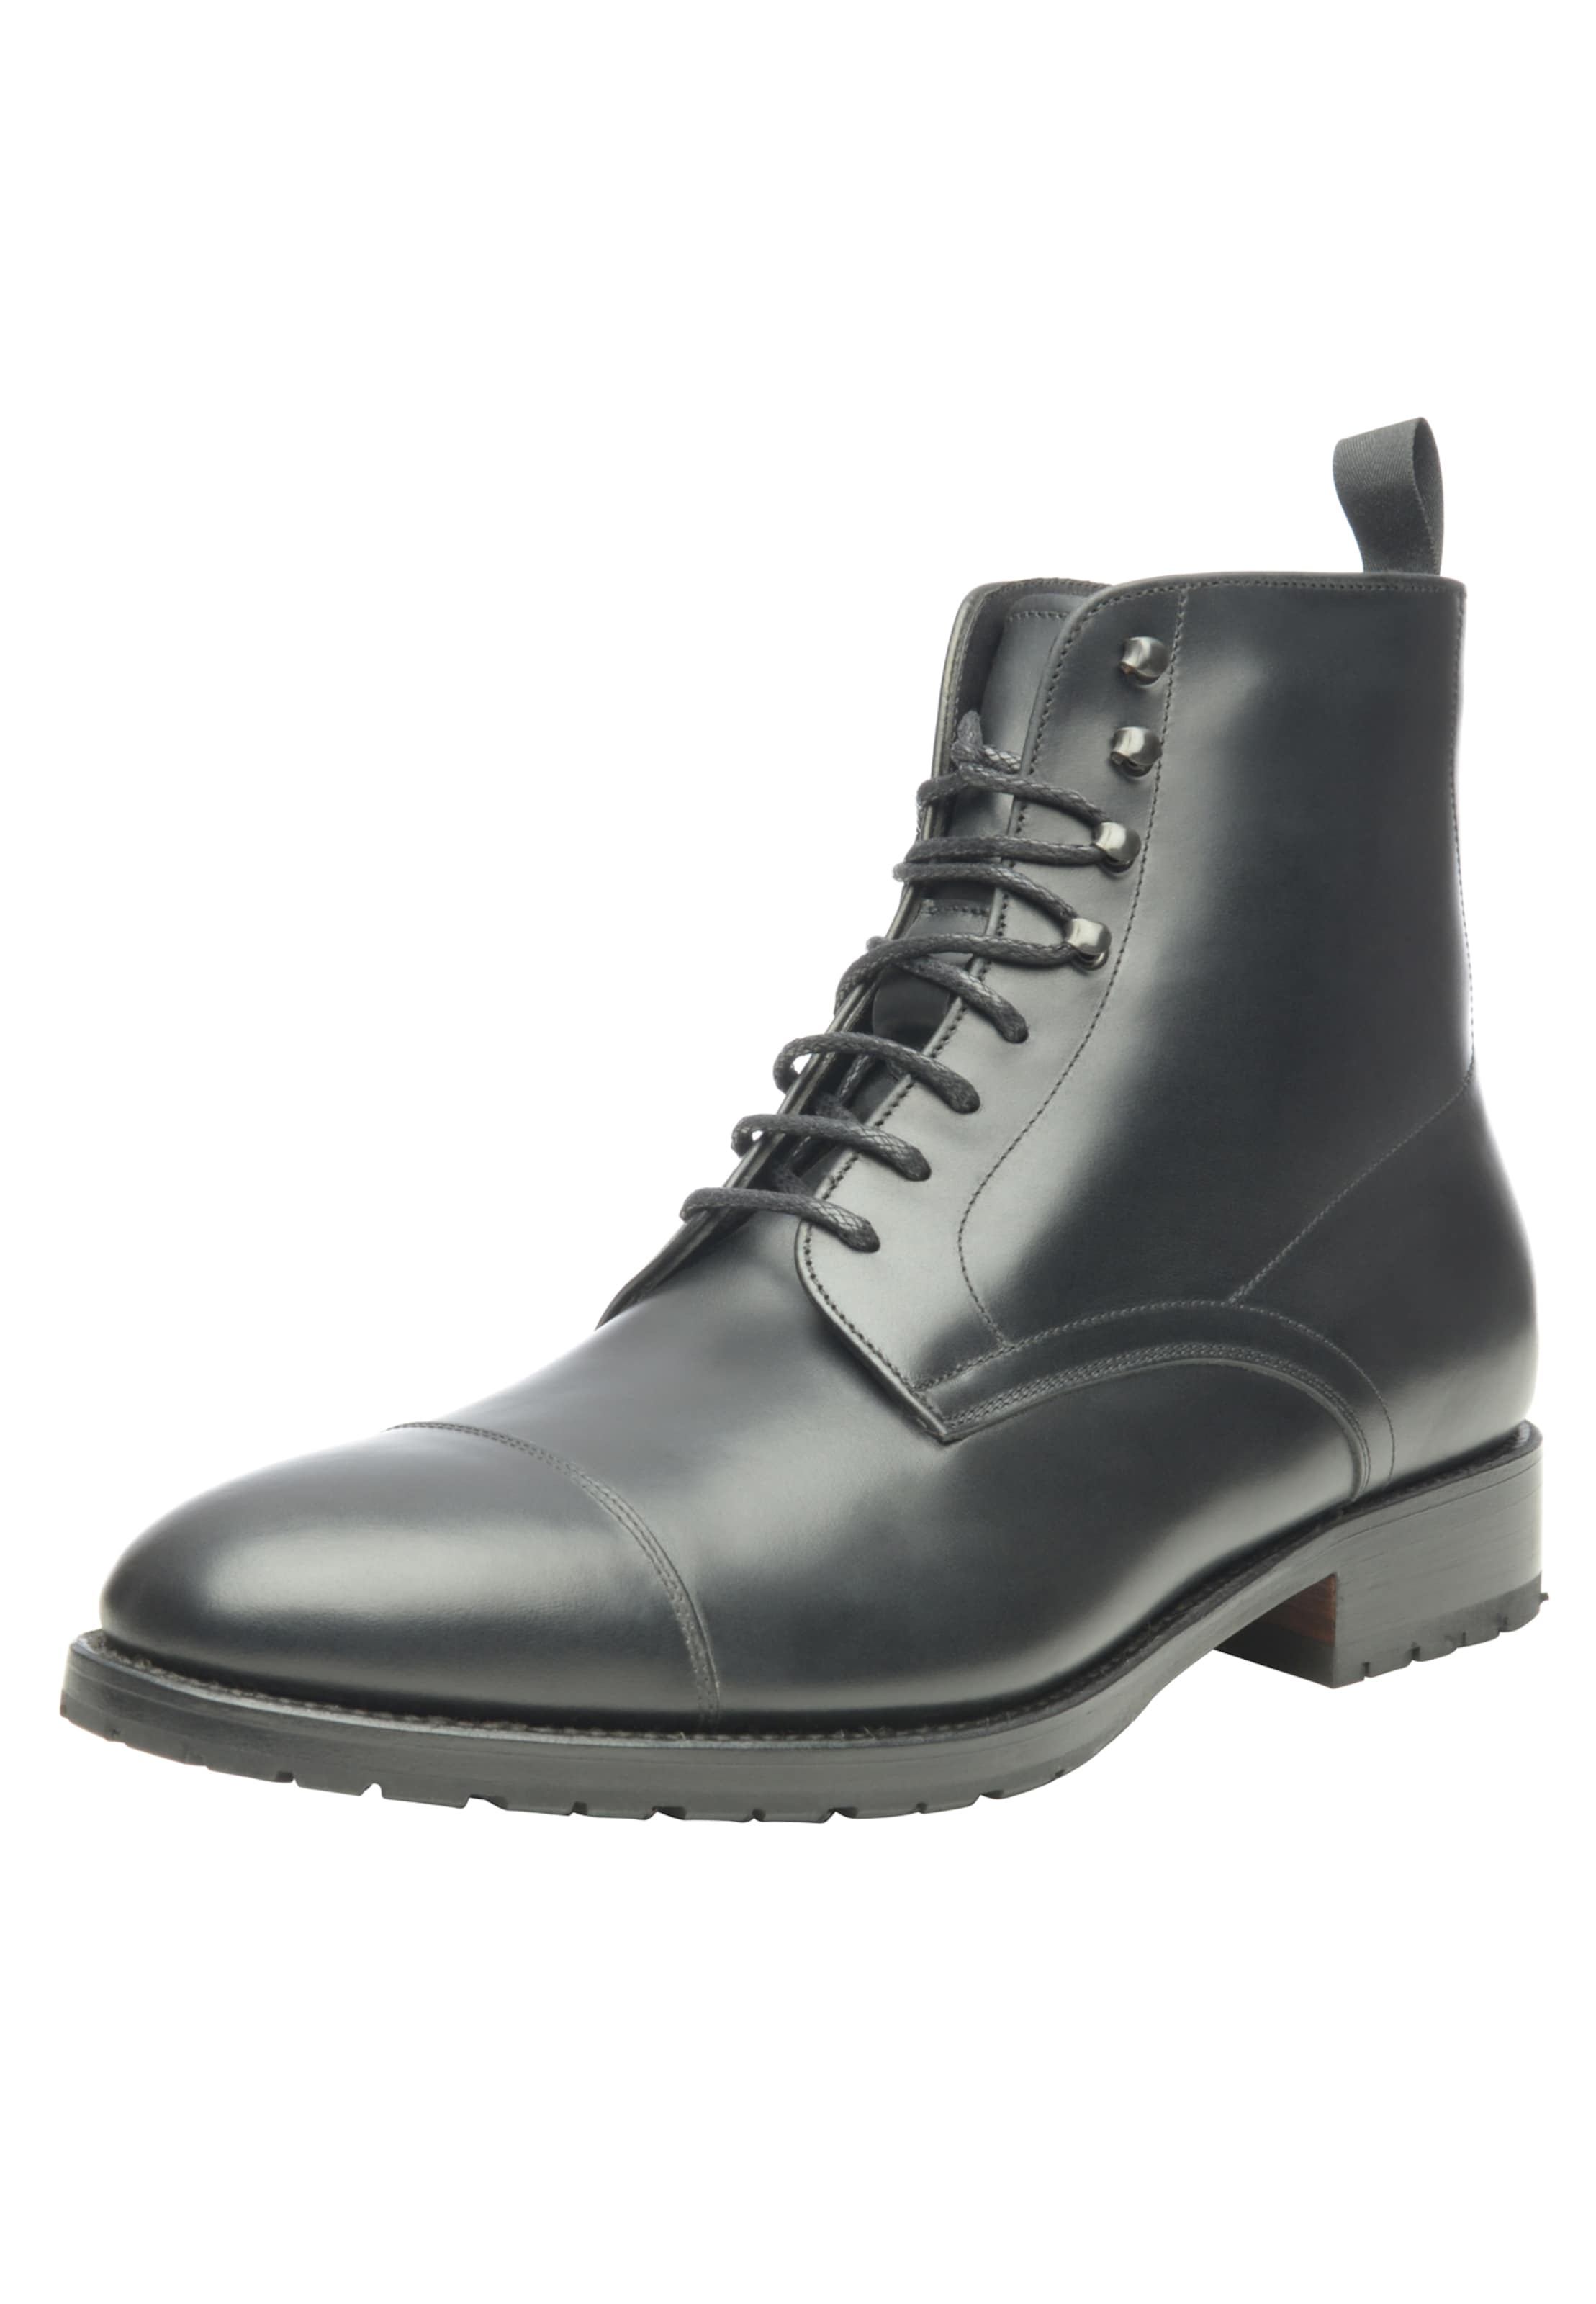 In Schwarz 'no675' Shoepassion In Shoepassion Winterboots Shoepassion Schwarz Winterboots 'no675' ED2b9IYeHW